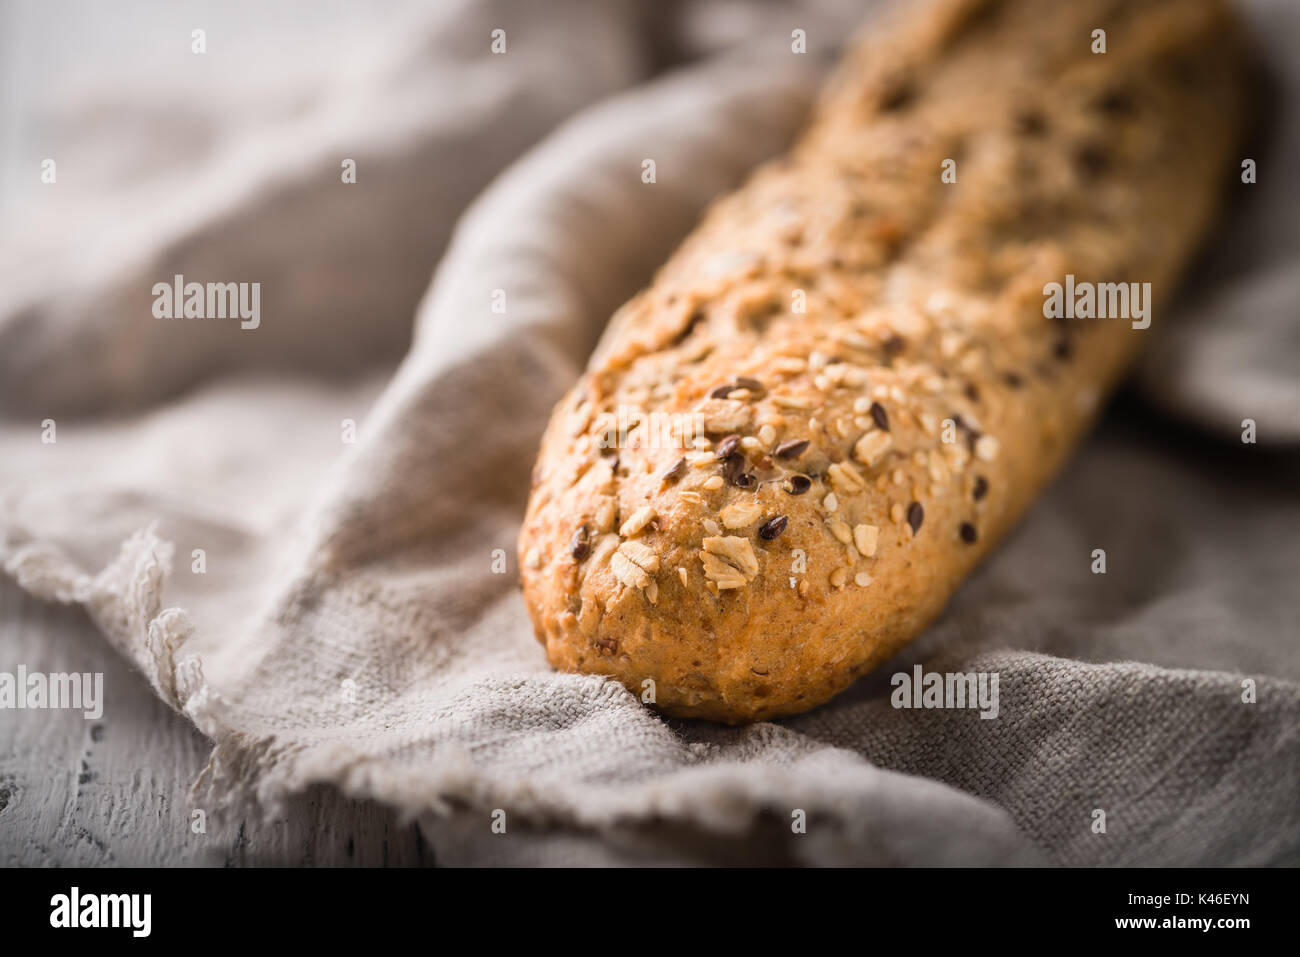 Fresh, healthy whole grain rye loaf on cloth and rustic wooden table, baguette close up. Bakery and grocery concept - Stock Image